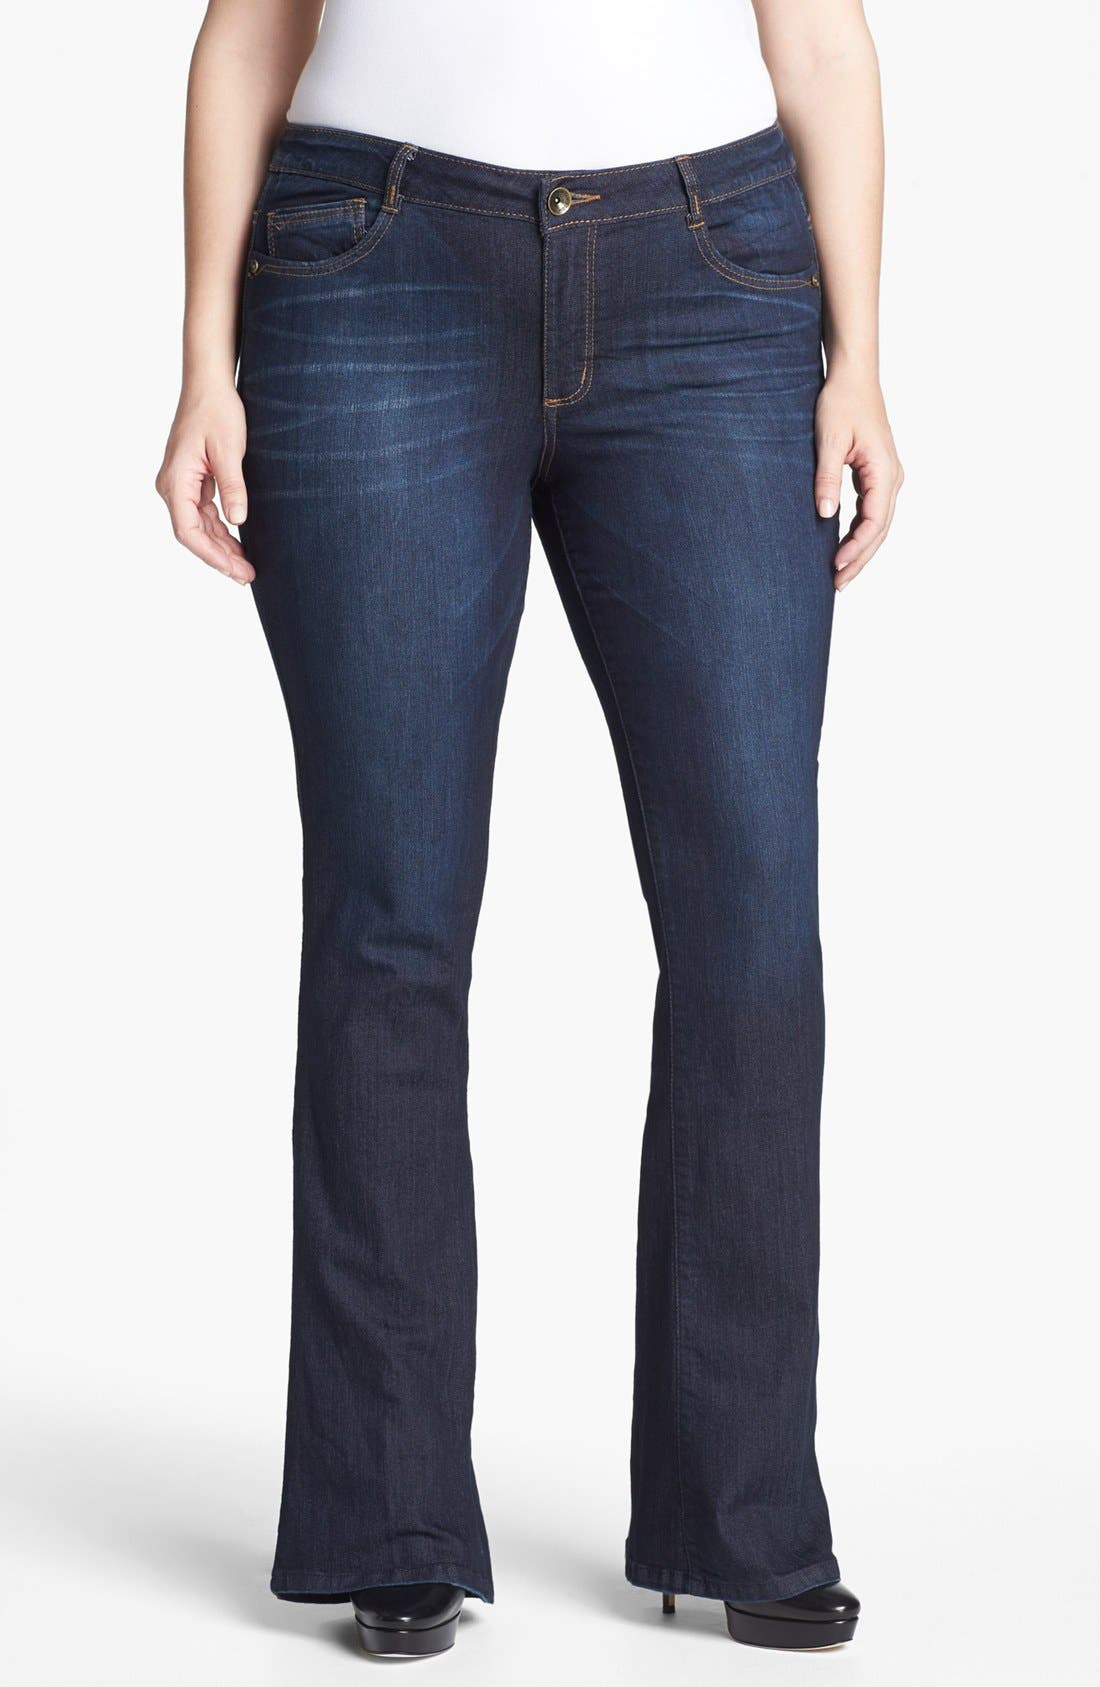 Main Image - Wit & Wisdom 'Itty Bitty' Bootcut Jeans (Plus Size) (Nordstrom Exclusive)